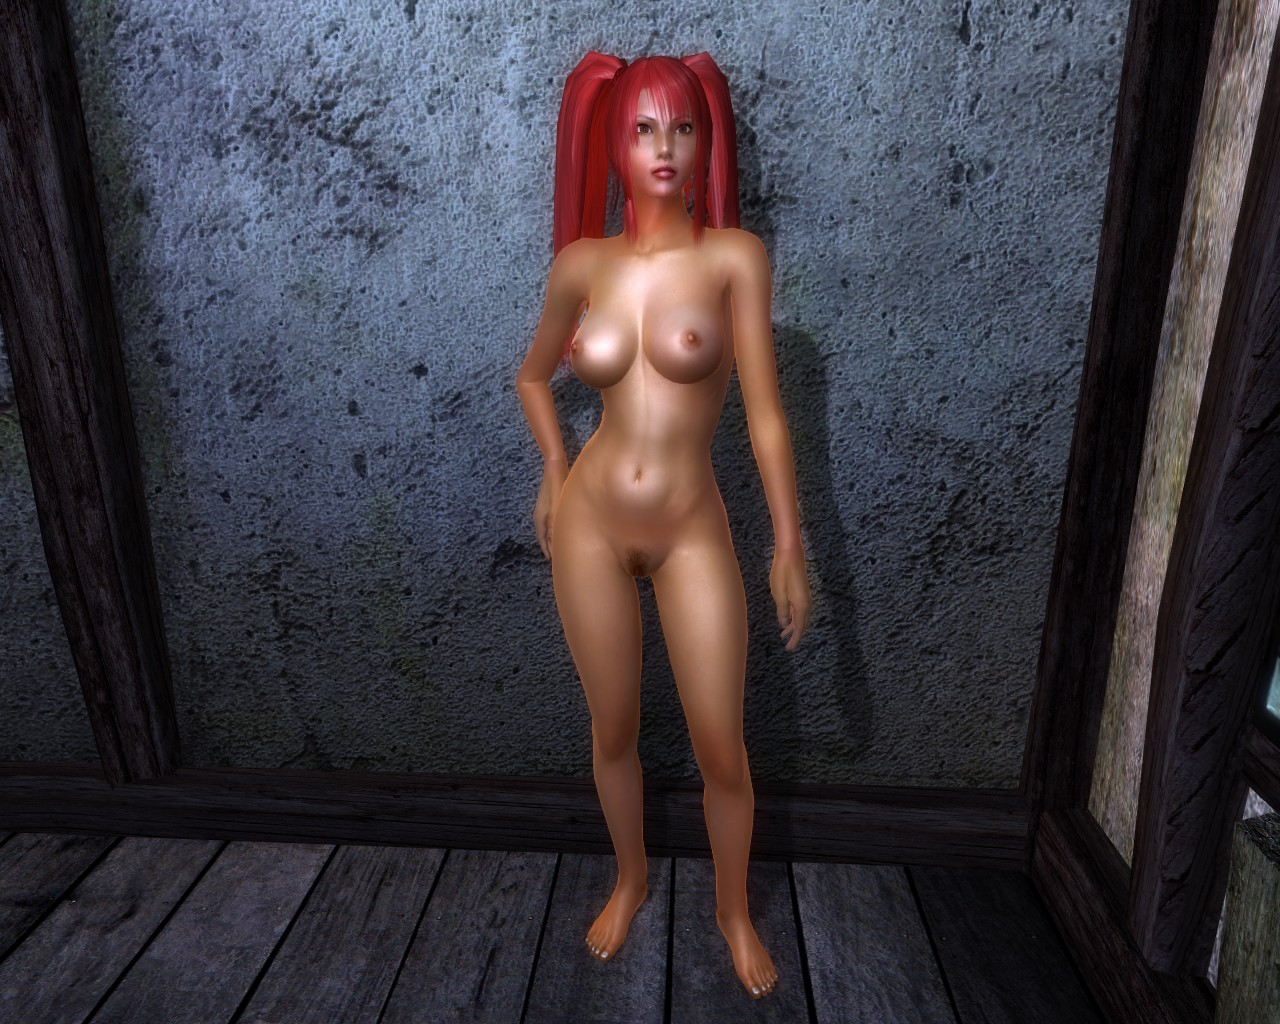 Mmorpg nude skins sexual movies